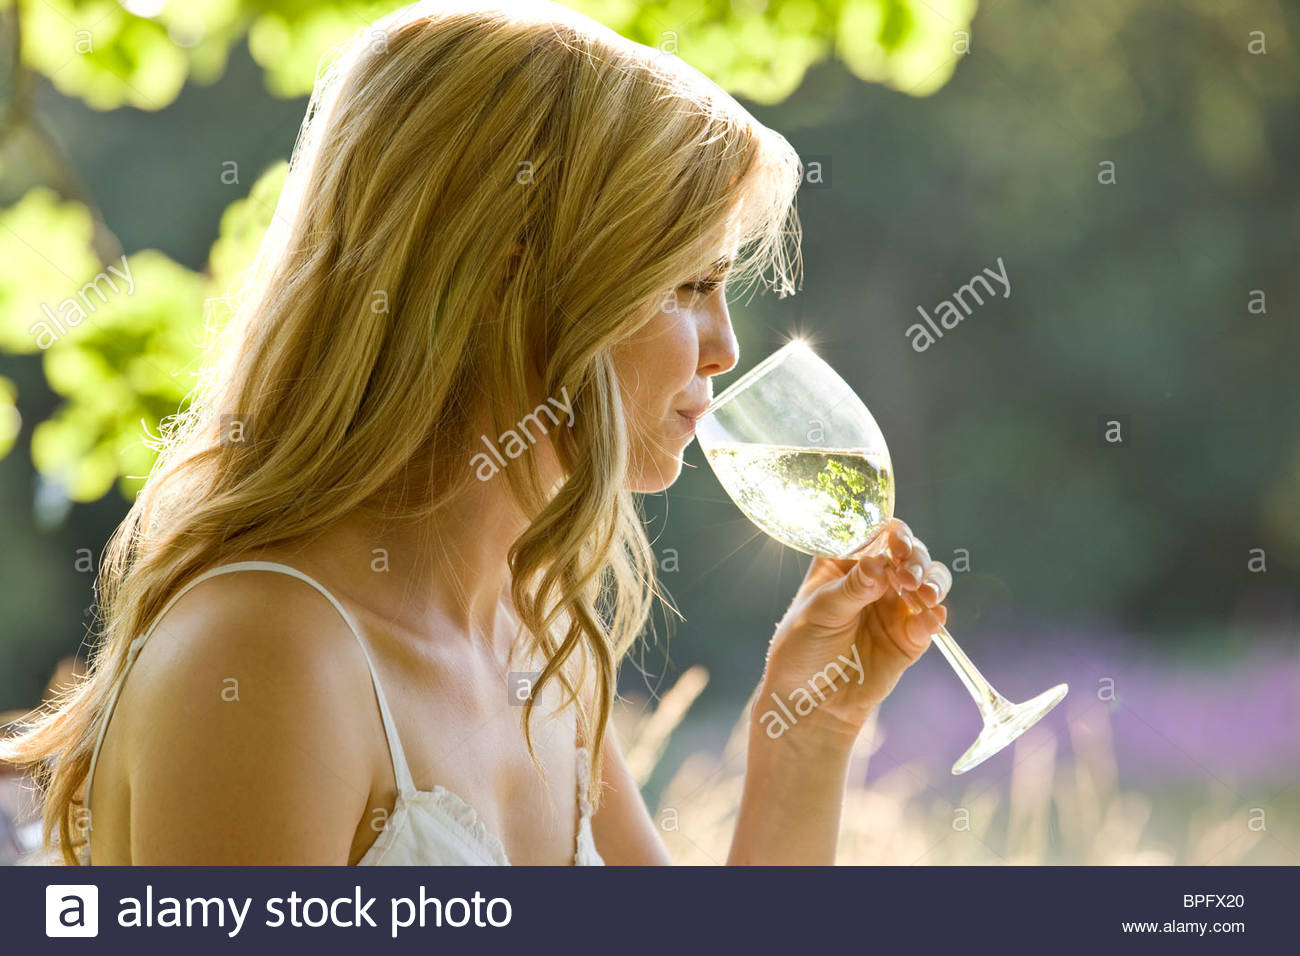 A young woman drinking a glass of white wine - Stock Image